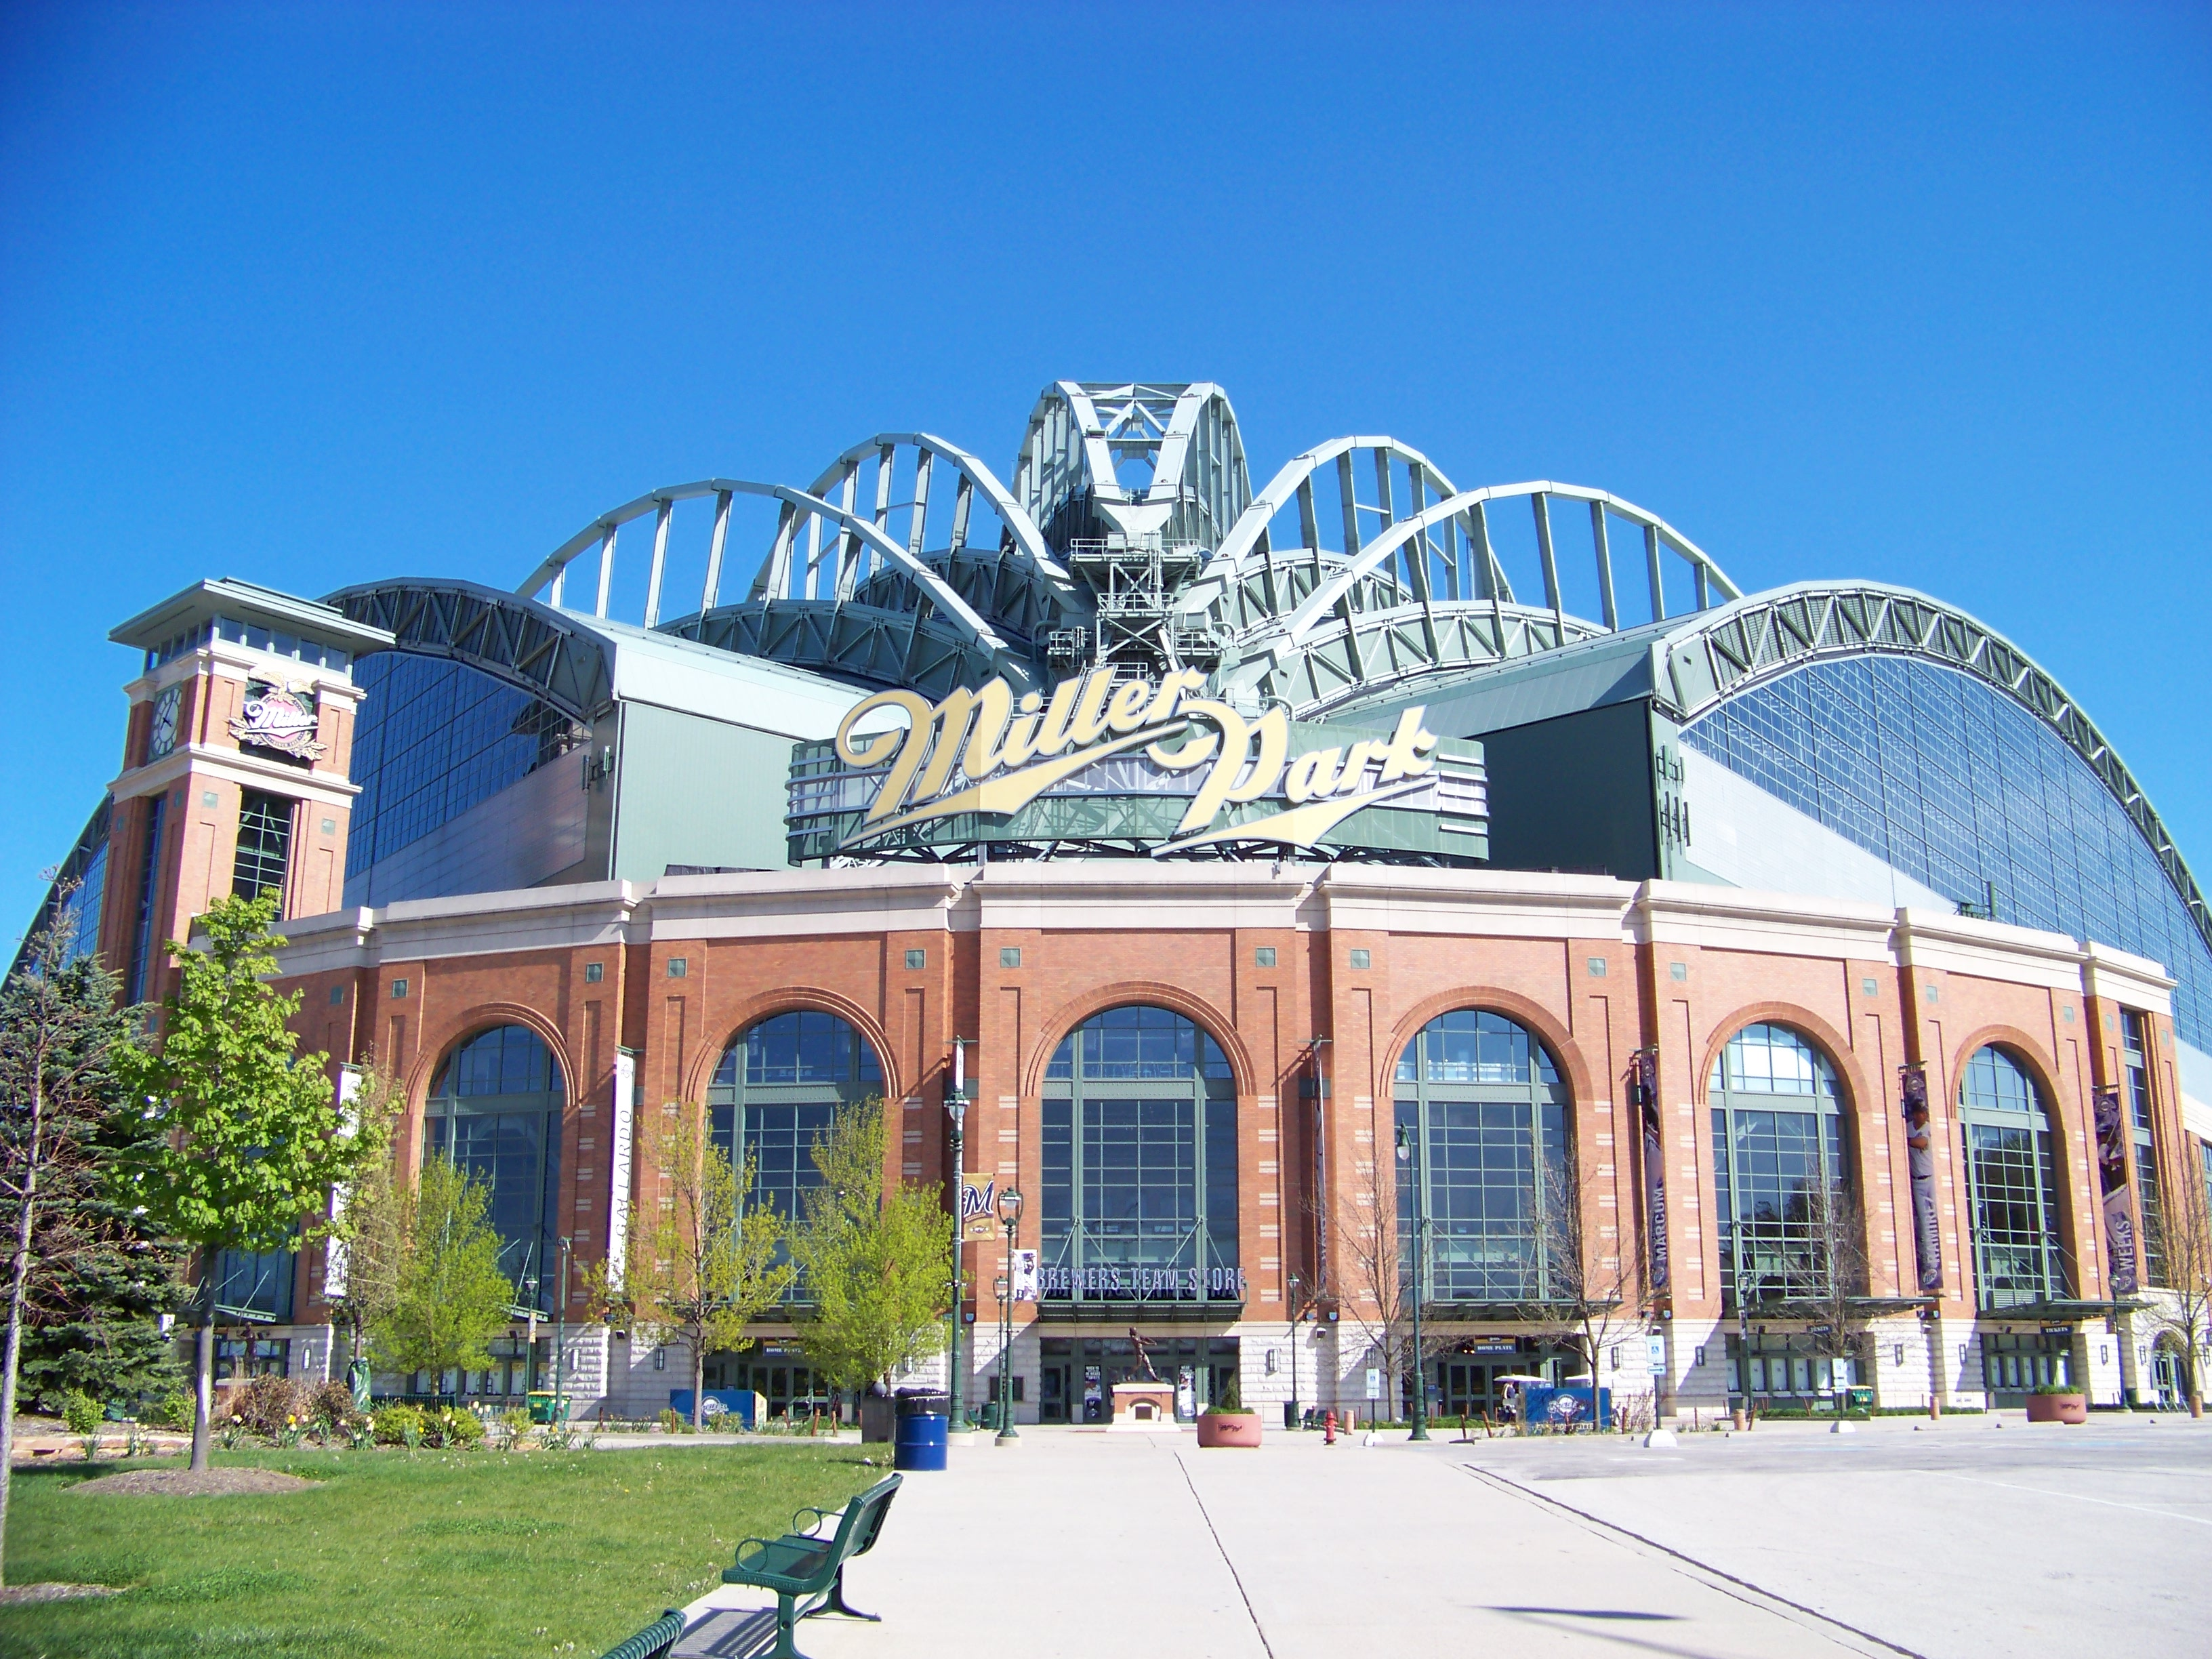 Walla wallop downs Dragons at Miller Park | The Midwest ...